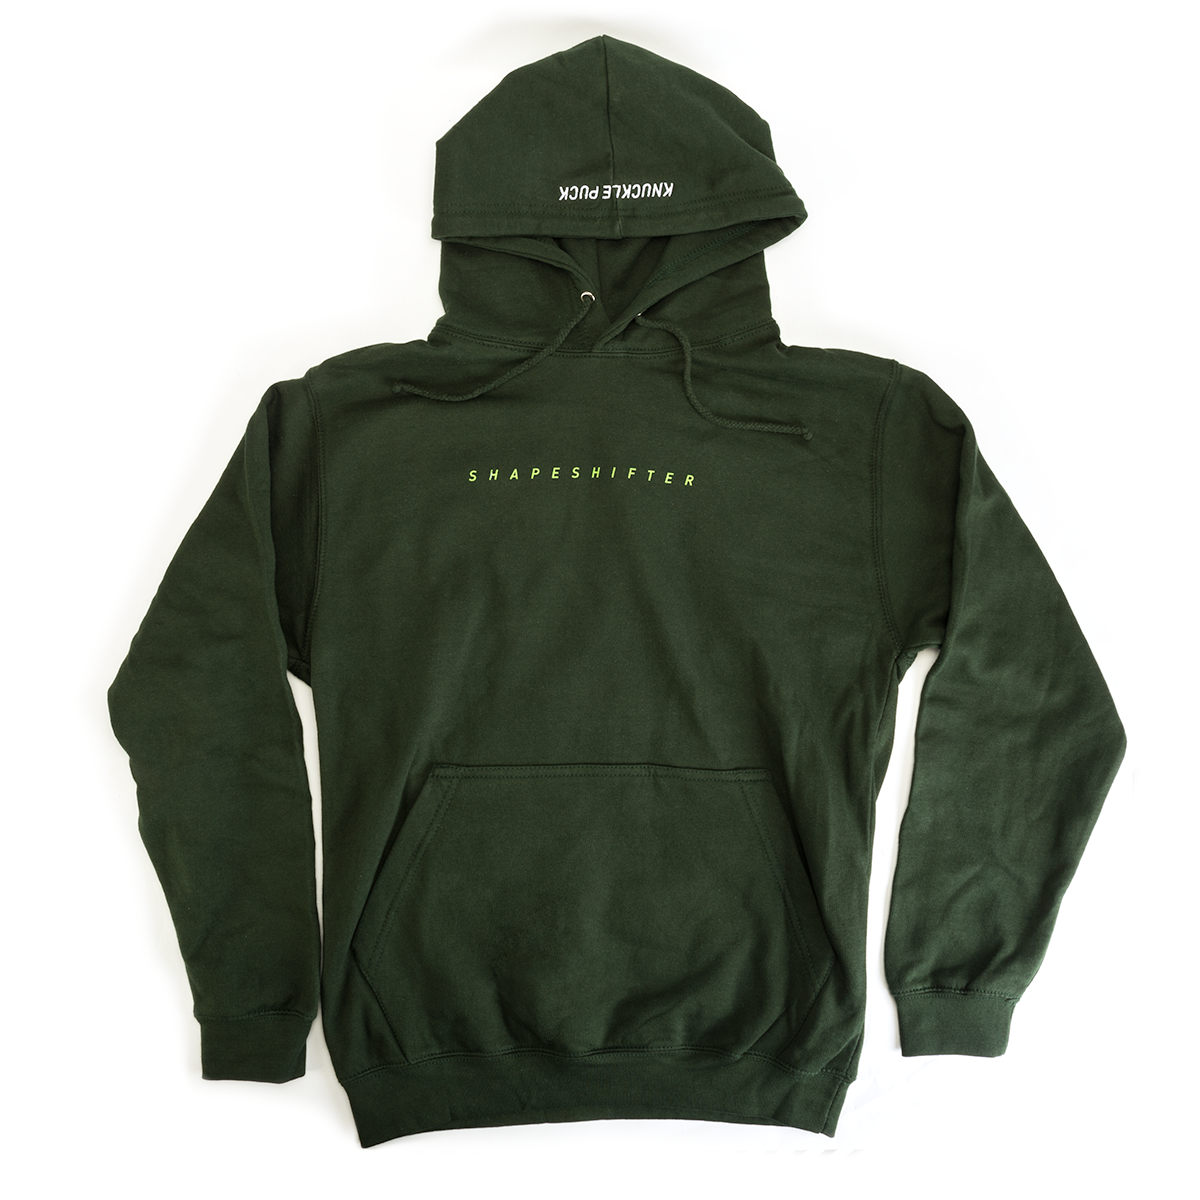 Shapeshifter Hoodie - Green